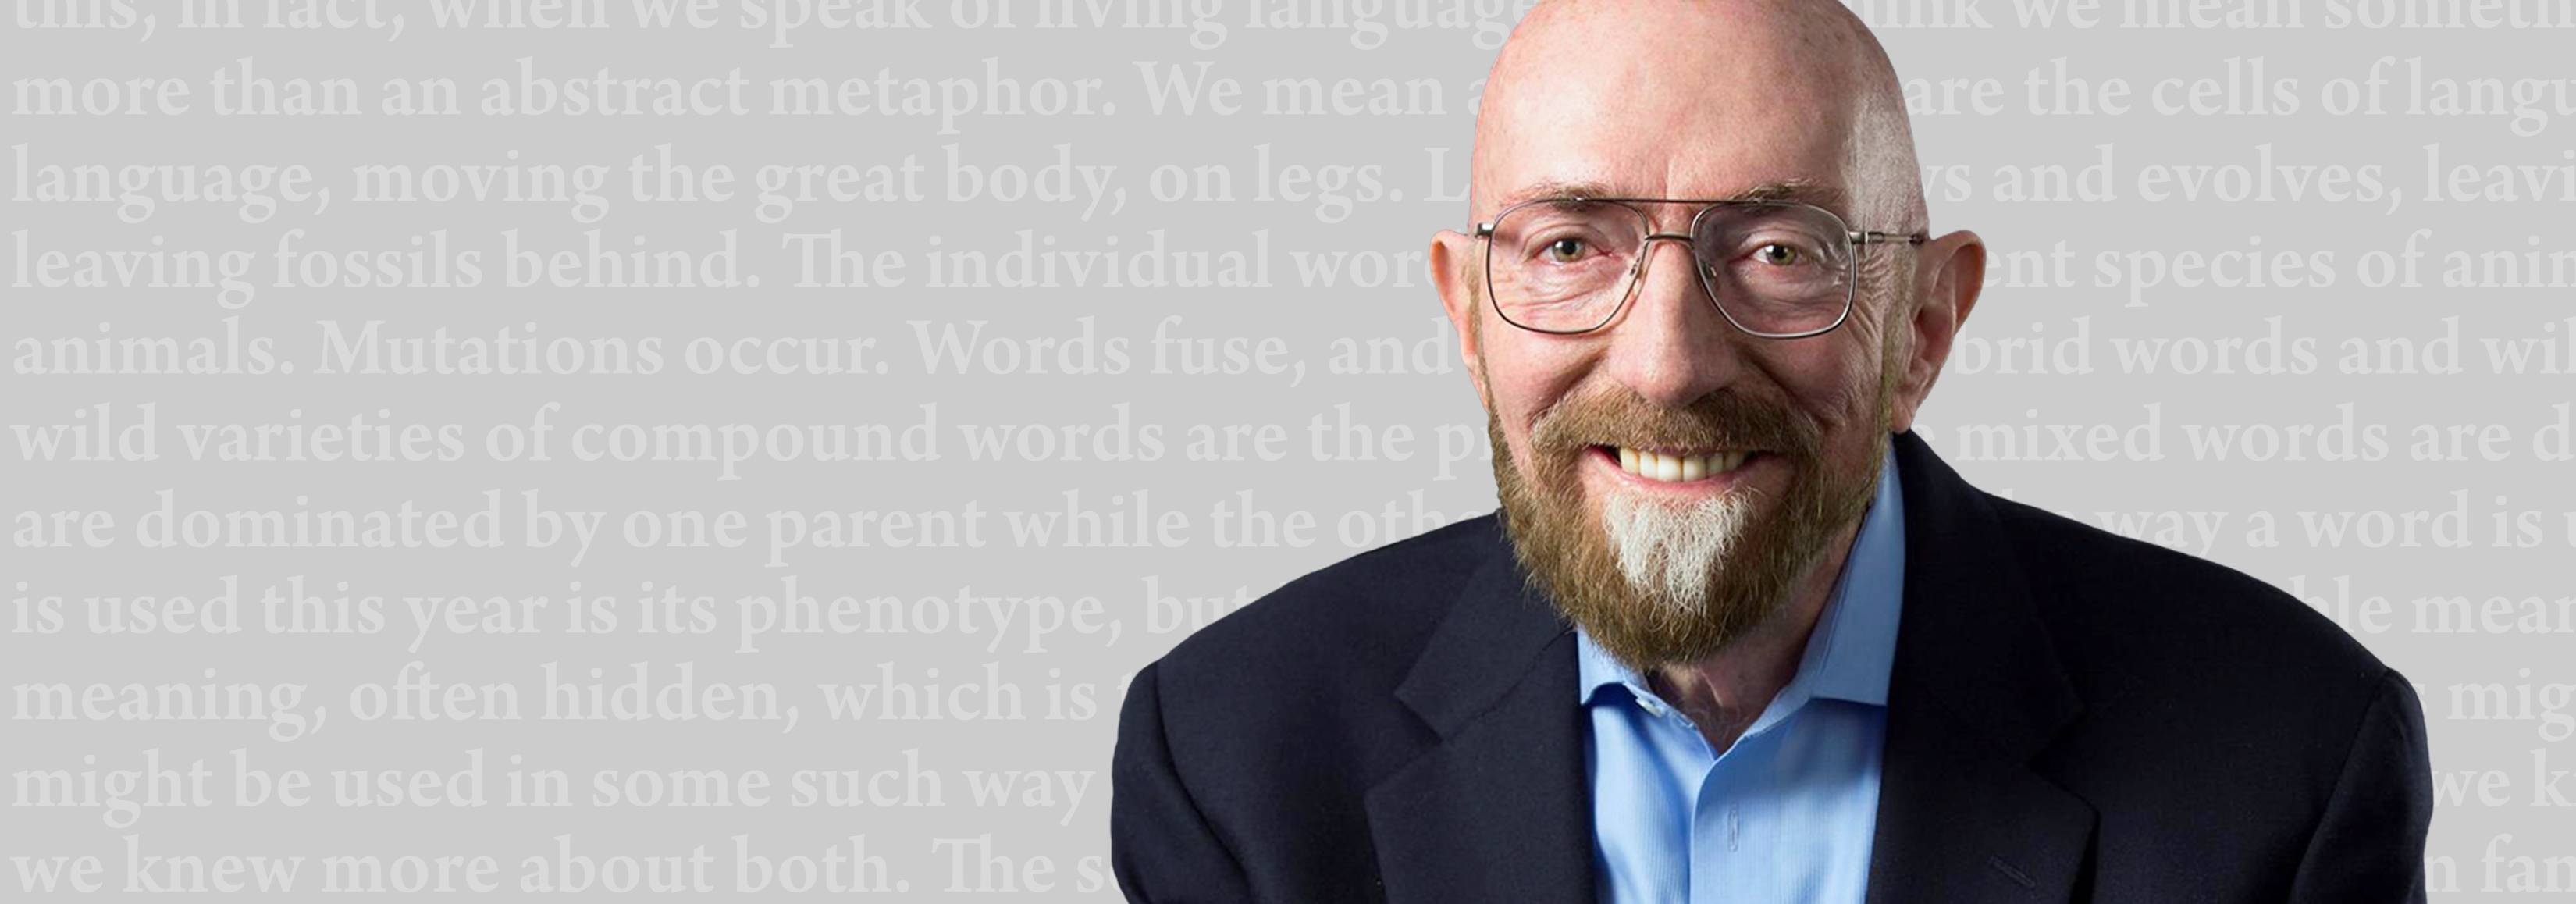 Kip Thorne with text behind him